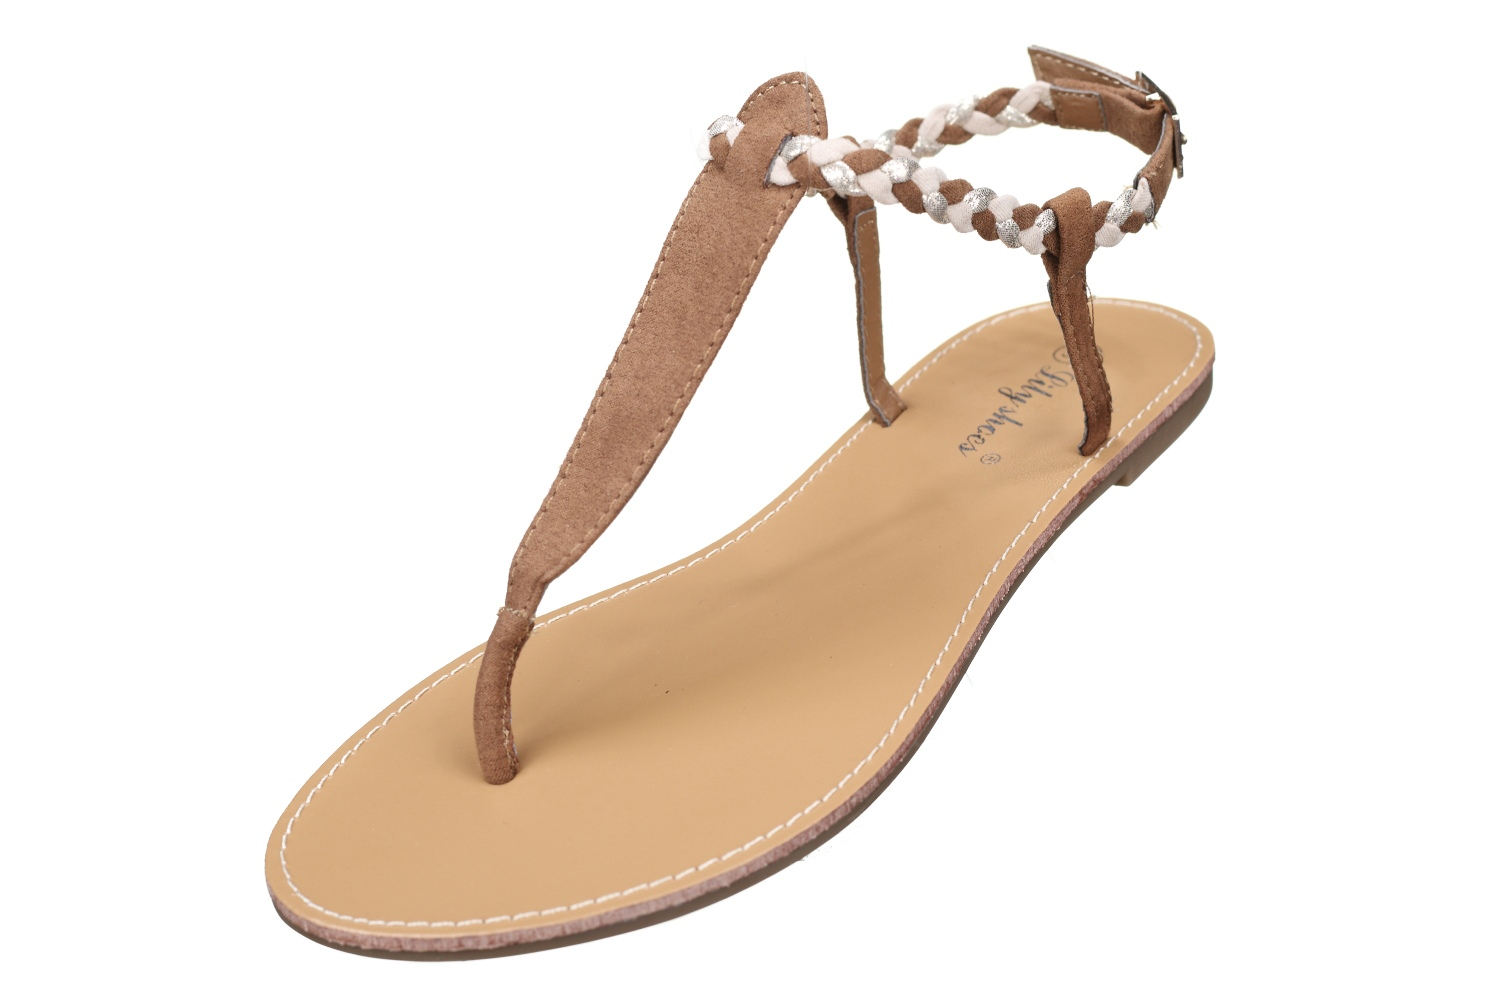 http://www.leadermode.com/143481/lily-shoes-l69-2-camel.jpg